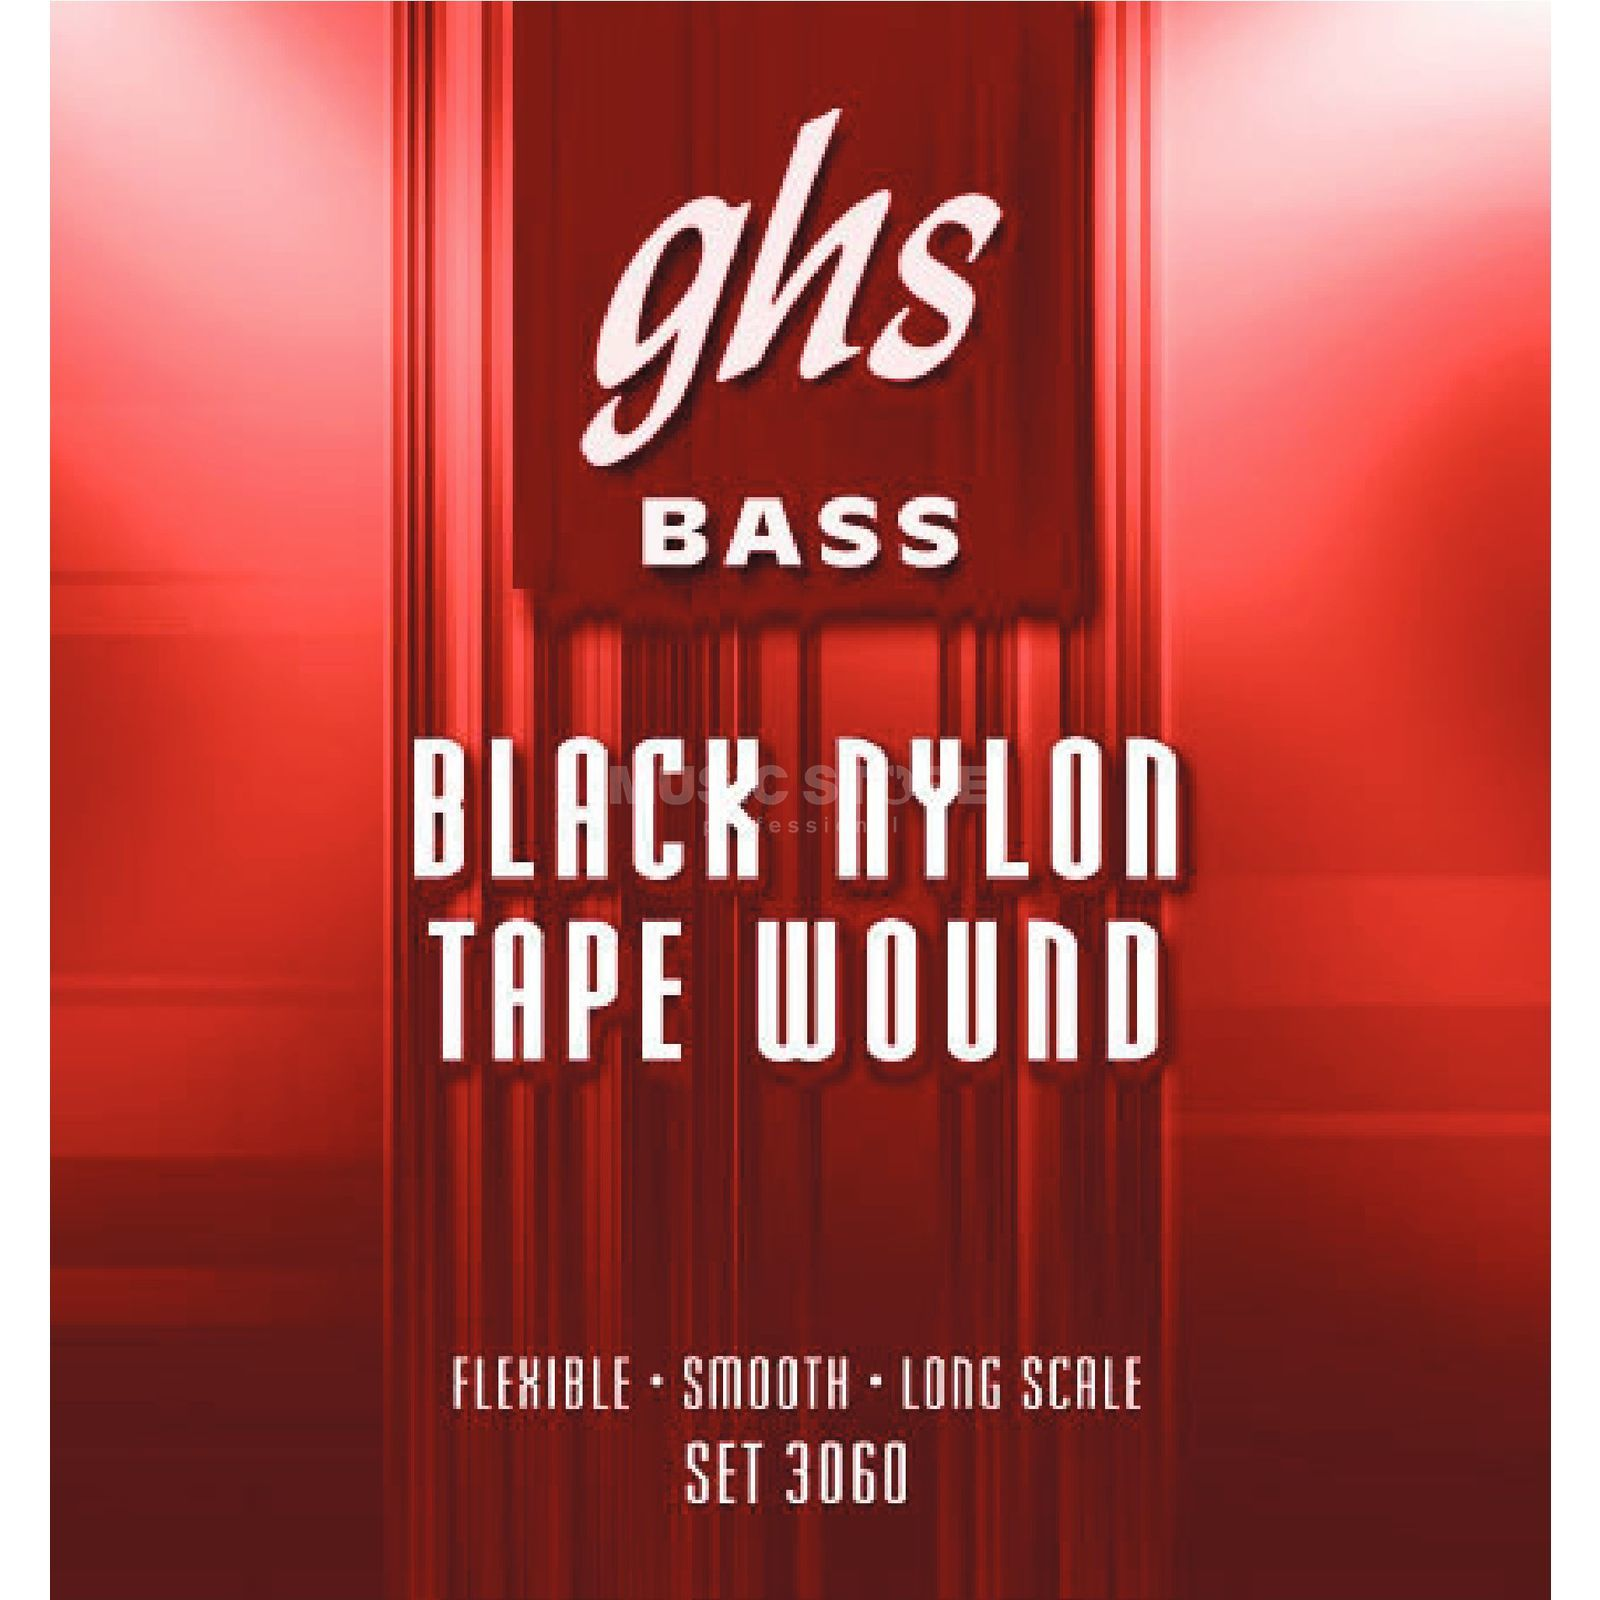 GHS 5 String Bass Tapewound Black Nylon 50-70-90-105-125 Product Image